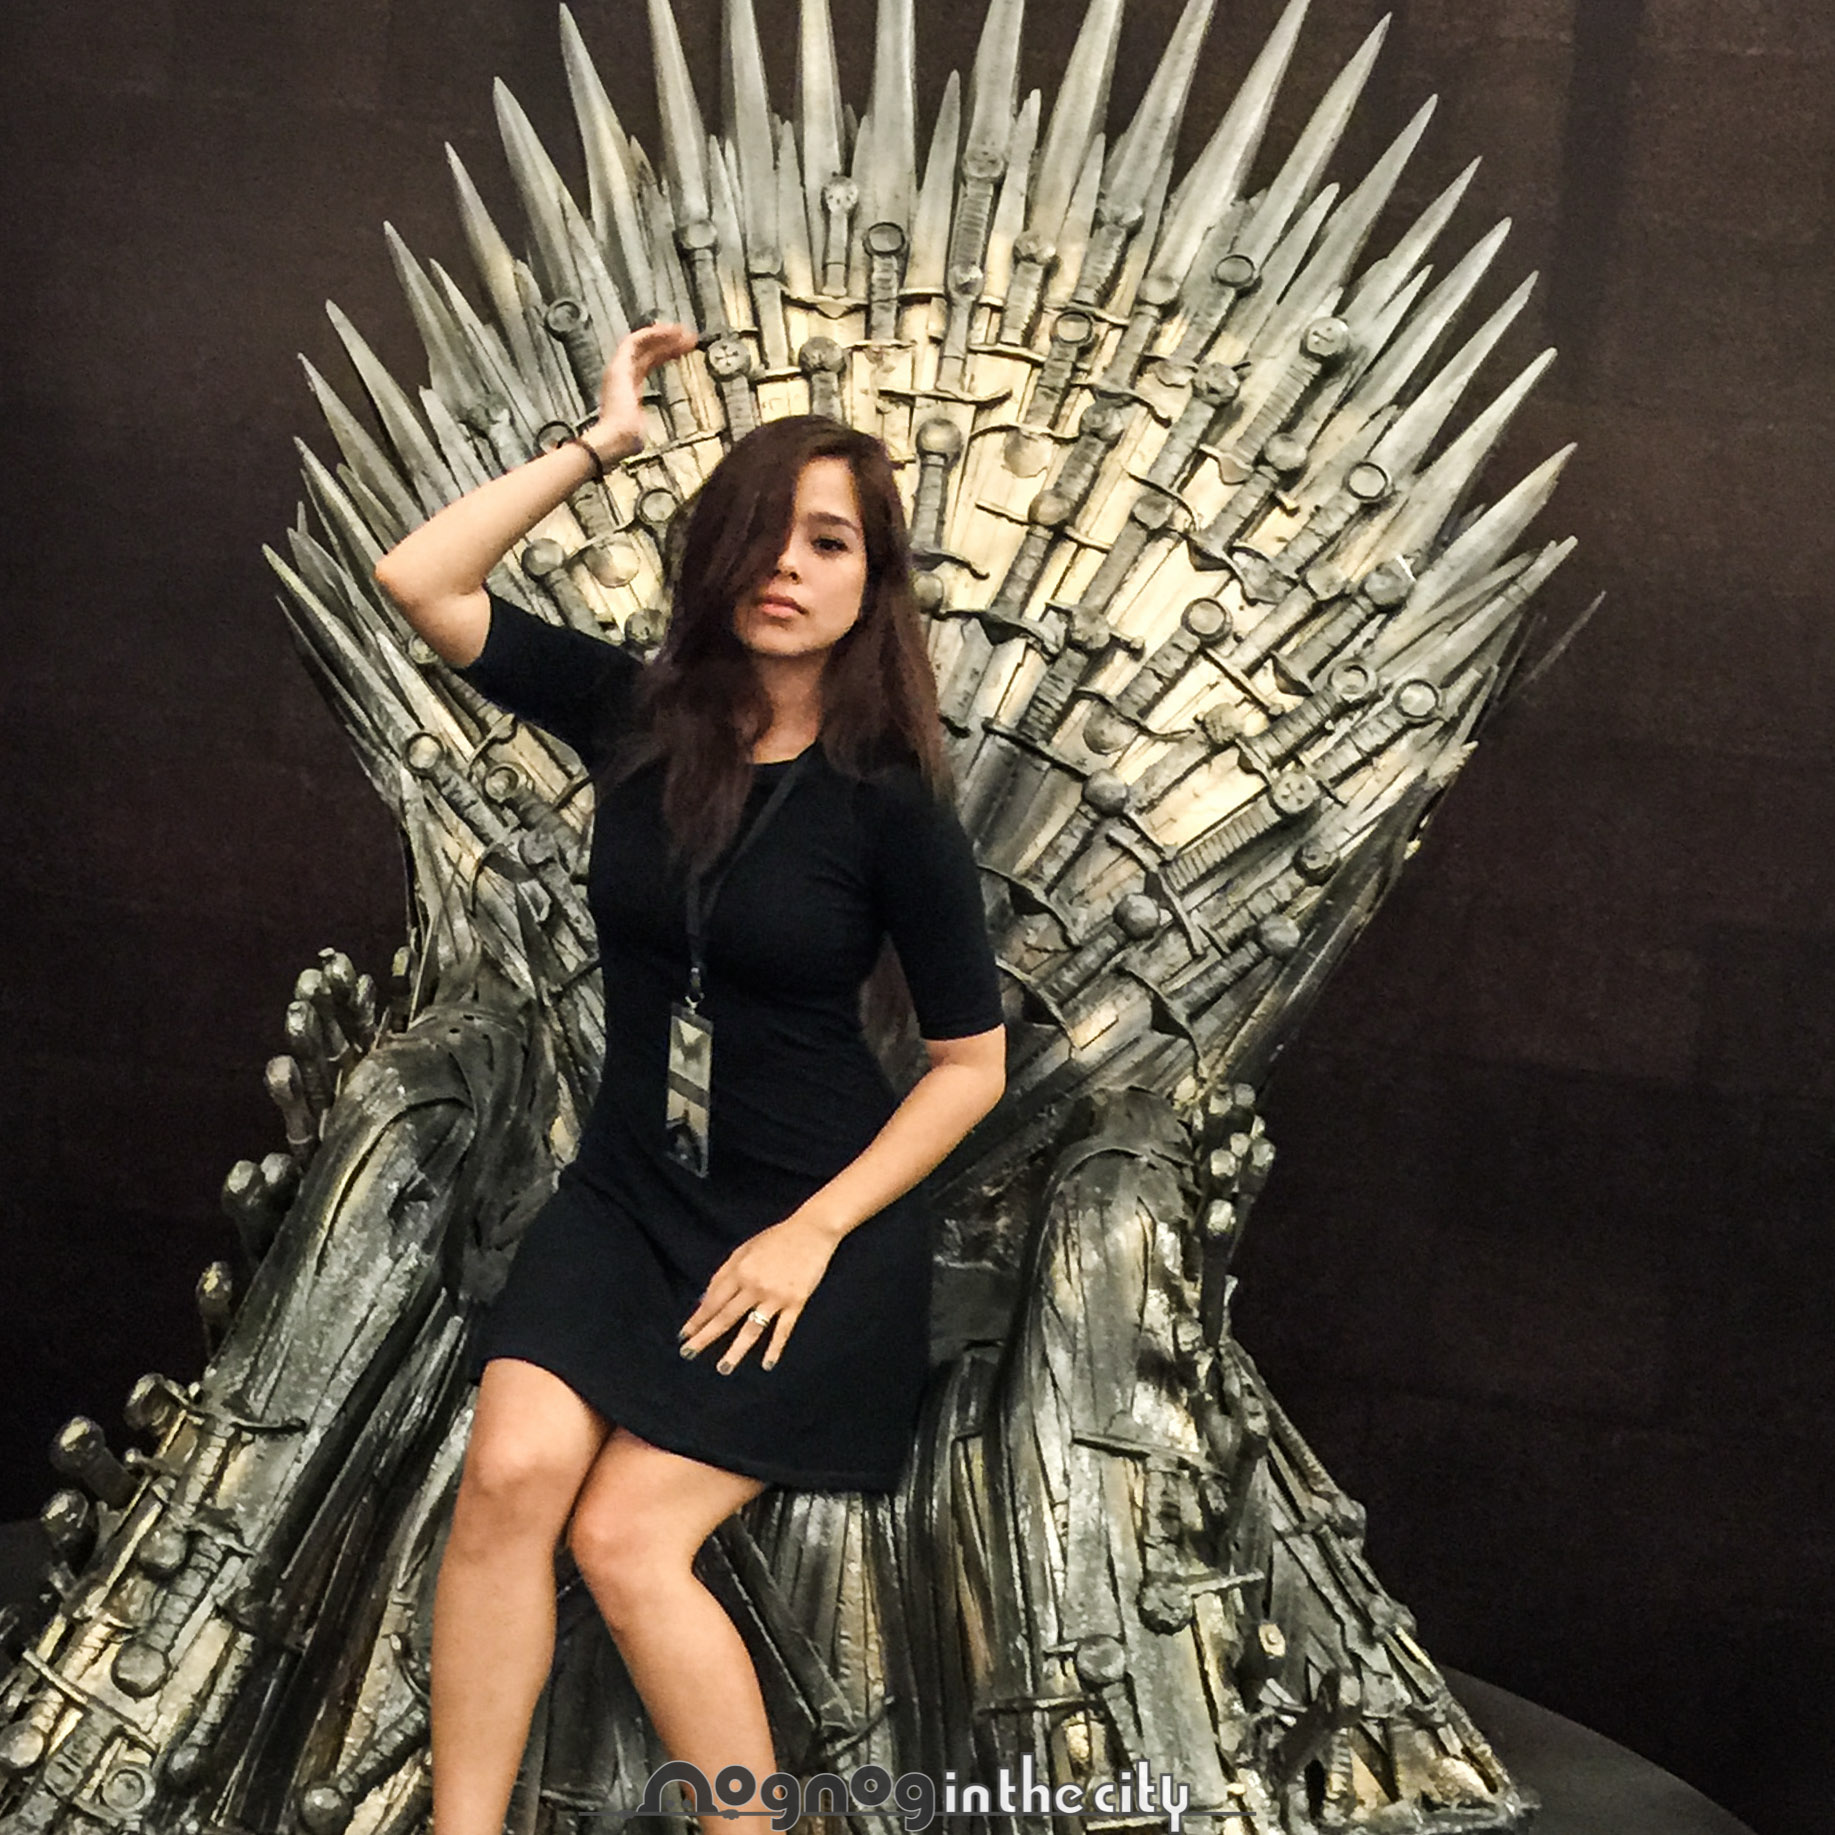 Game of Thrones' Iron Throne Replica is in Manila